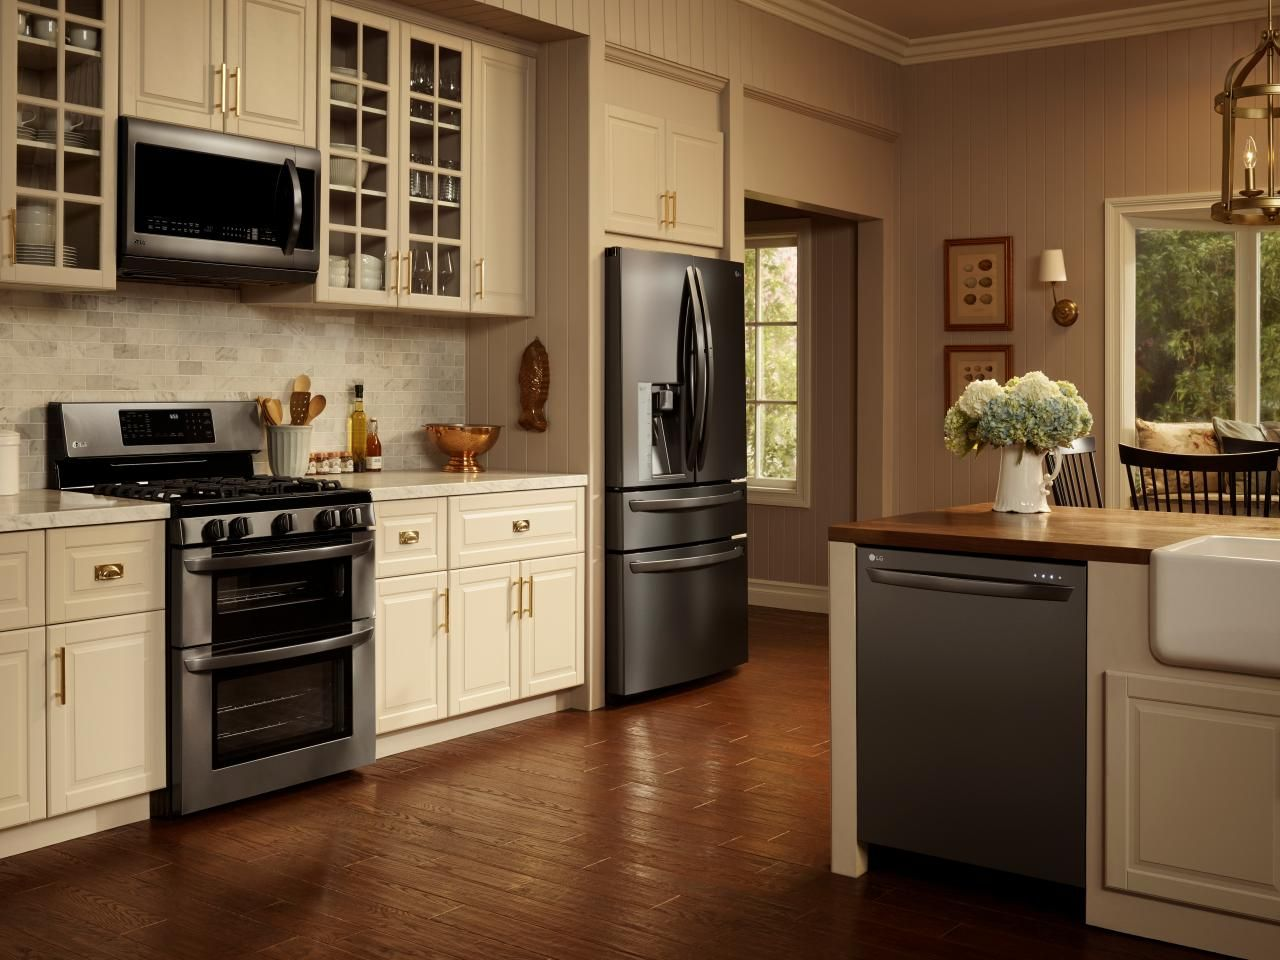 black and stainless kitchen my favorite thing about the new lg black stainless steel appliances is that they feel so much warmer than traditional stainless steel